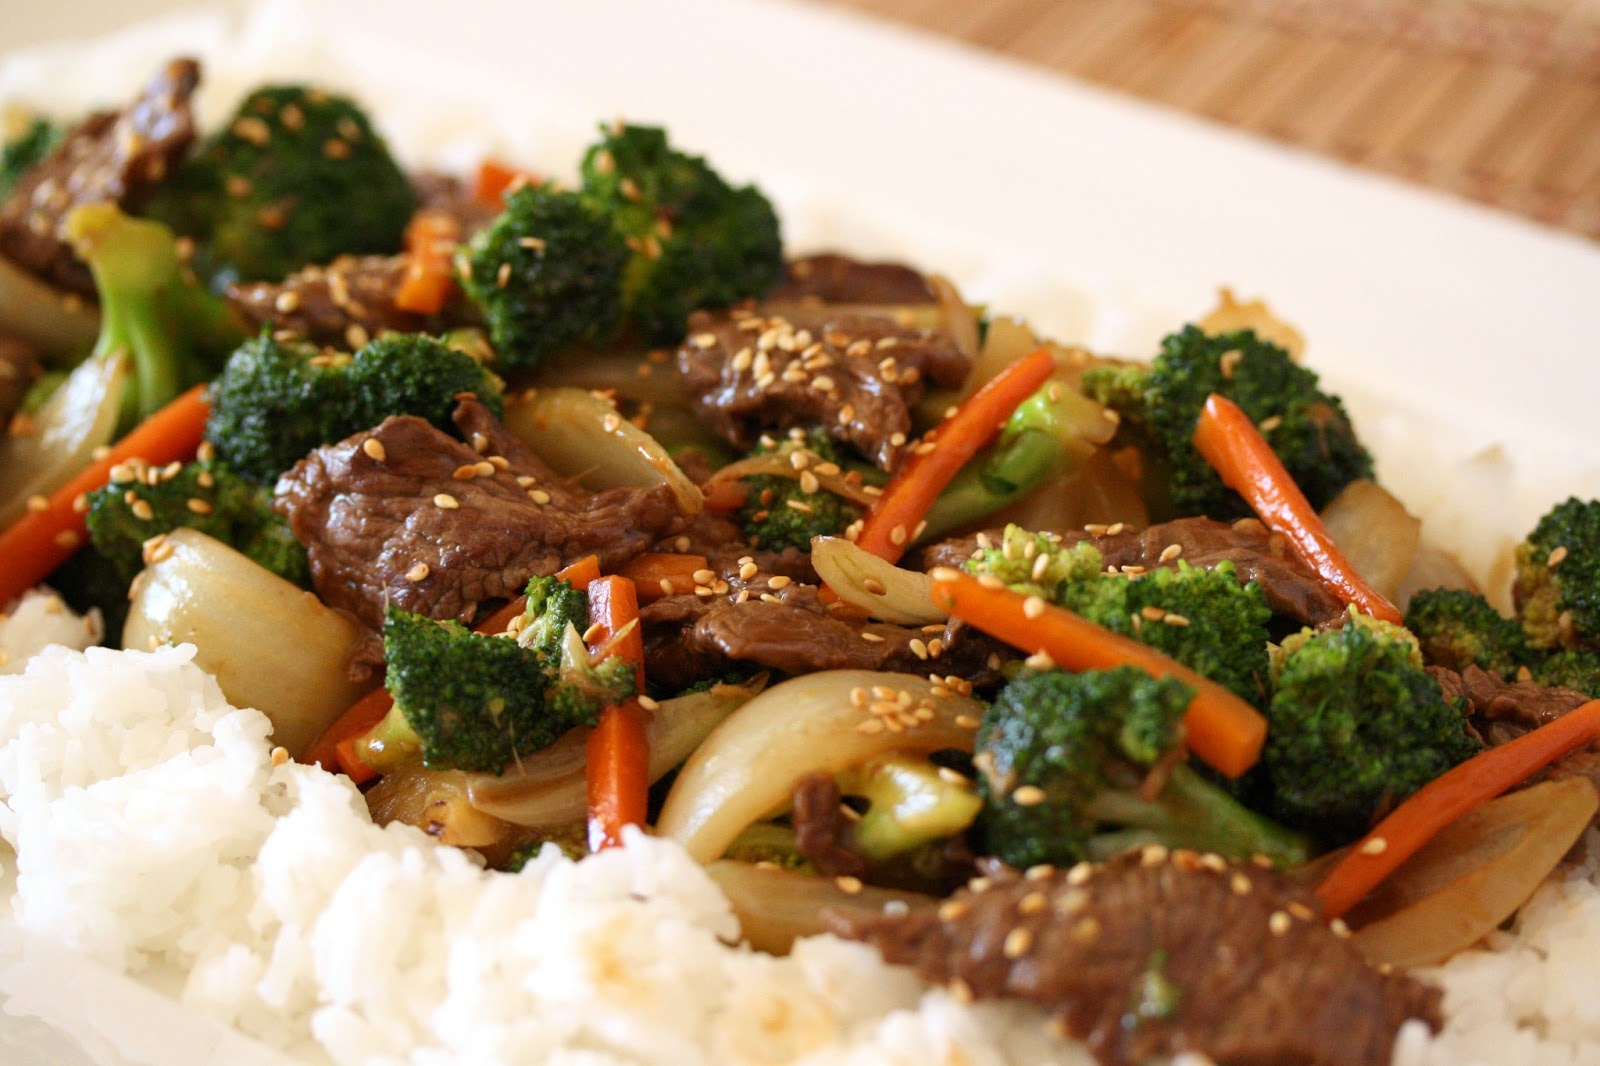 Beef & Broccoli Stir-Fry - Saving Room for Dessert